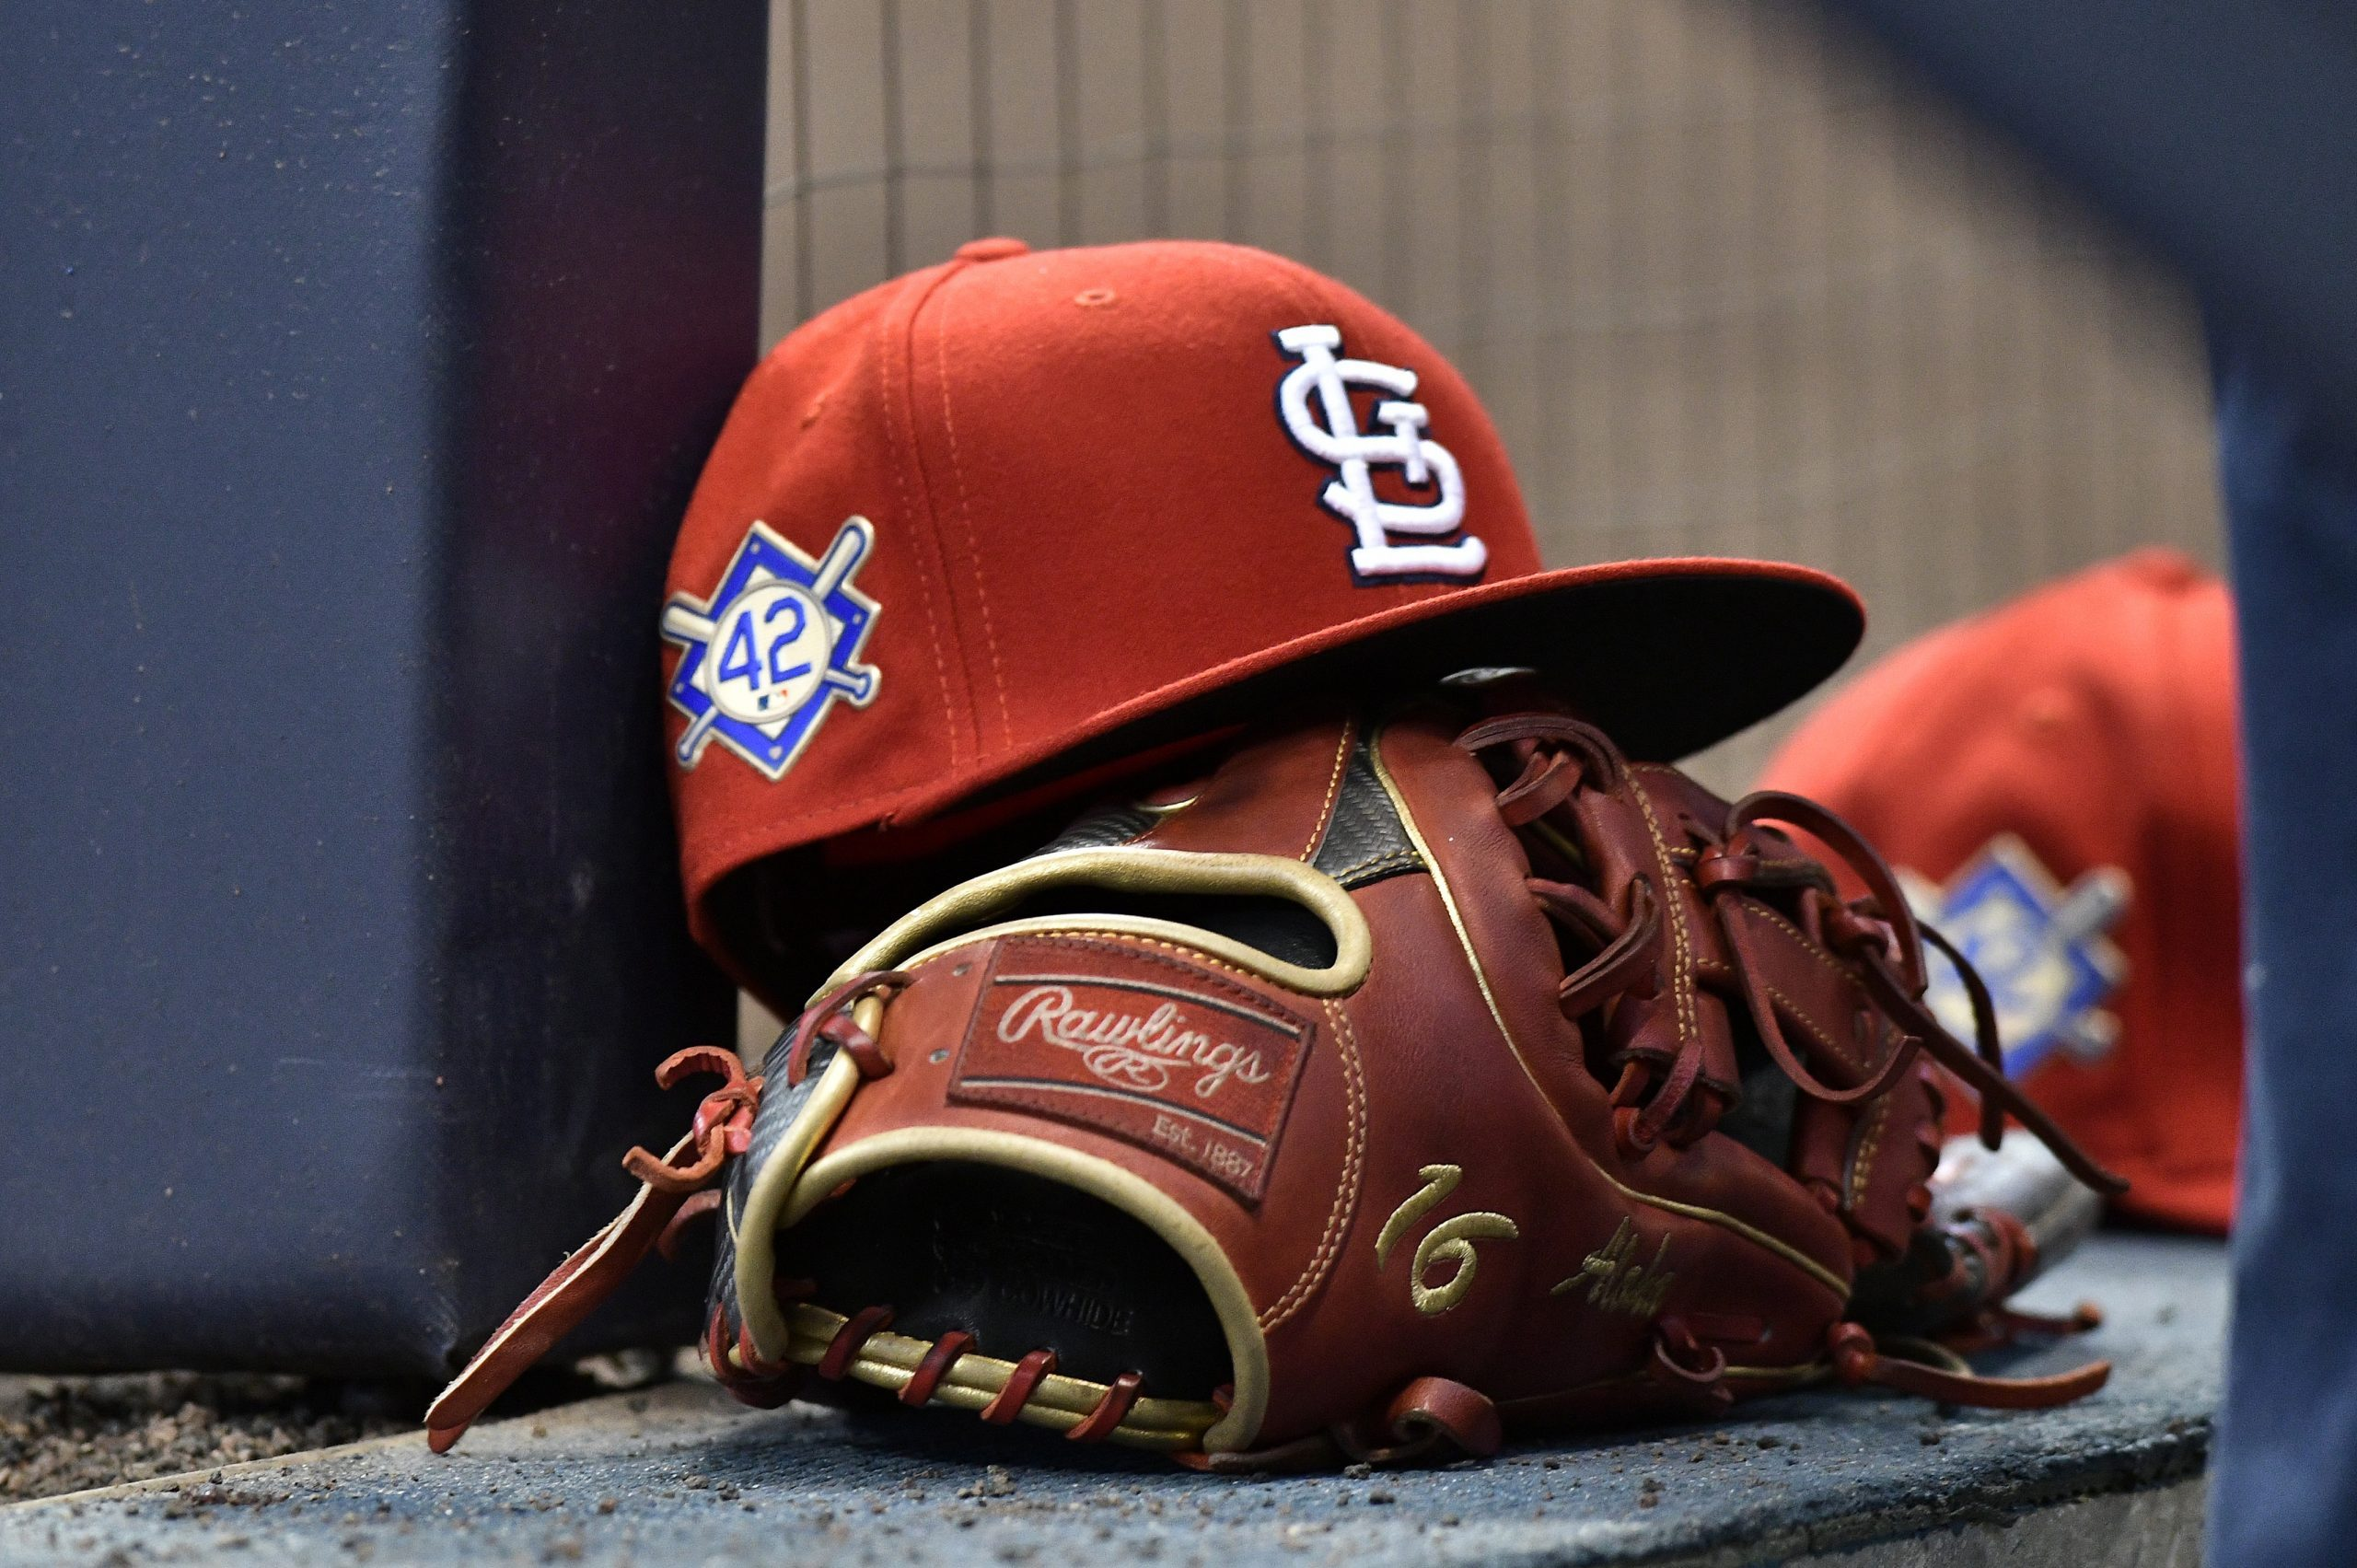 Cardinals' Game vs. Brewers Postponed After 2 Pitchers Test Positive for COVID-19